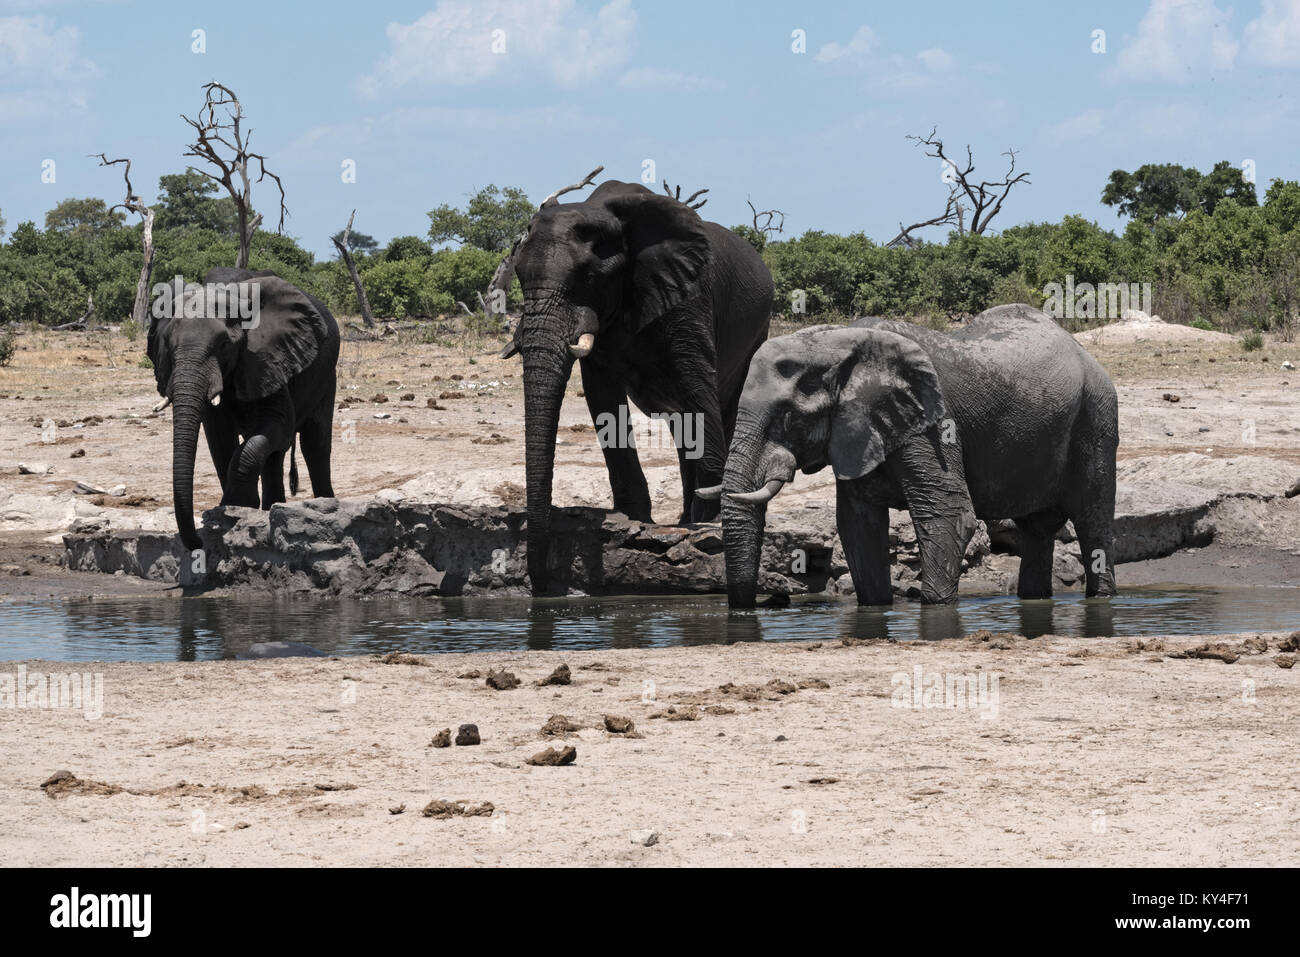 Groupe d'éléphants à un étang dans le Parc National de Chope au Botswana Photo Stock